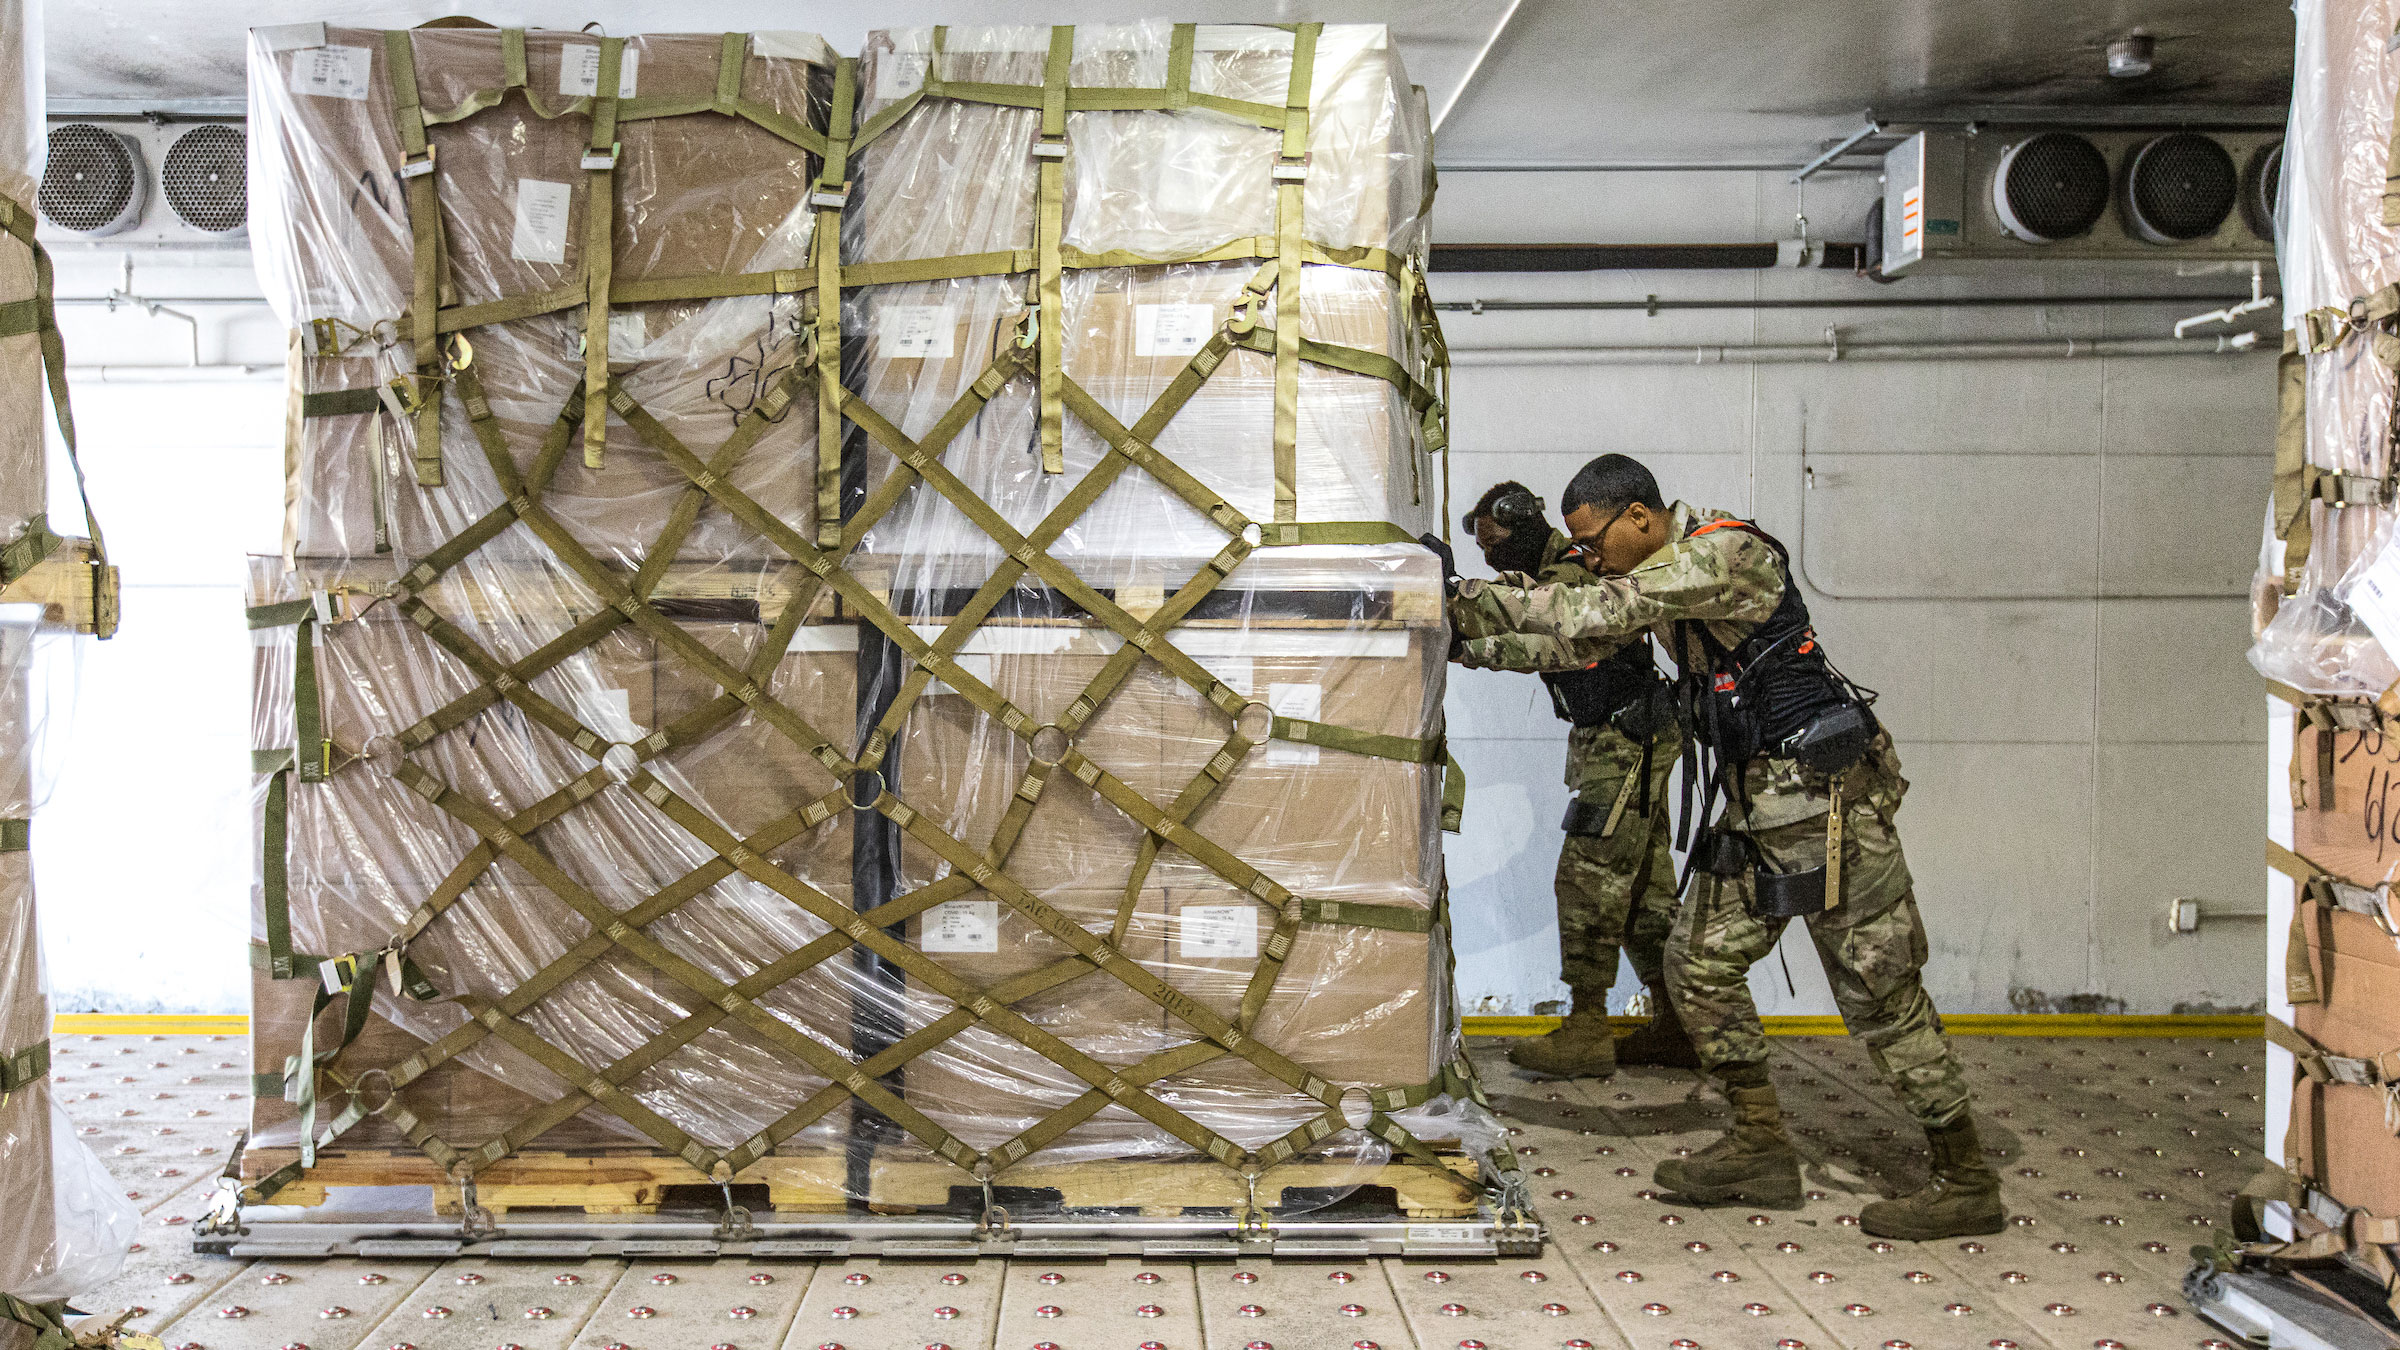 Air Force exoskeleton gets heavy lift from ASU